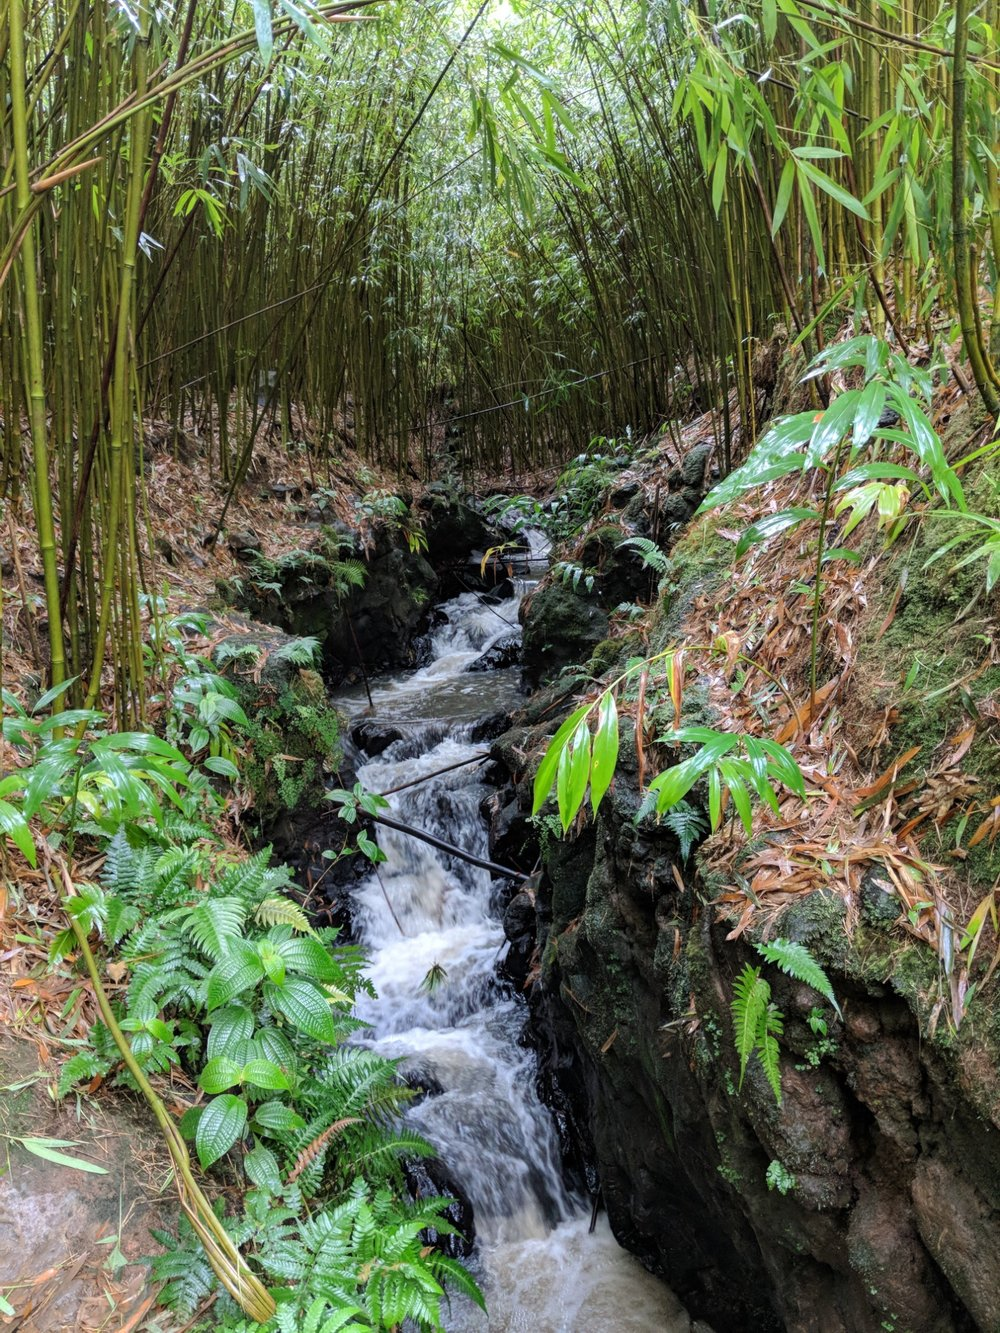 In the bamboo forest on the road to Hana, has a small stream that leads to the first waterfall.